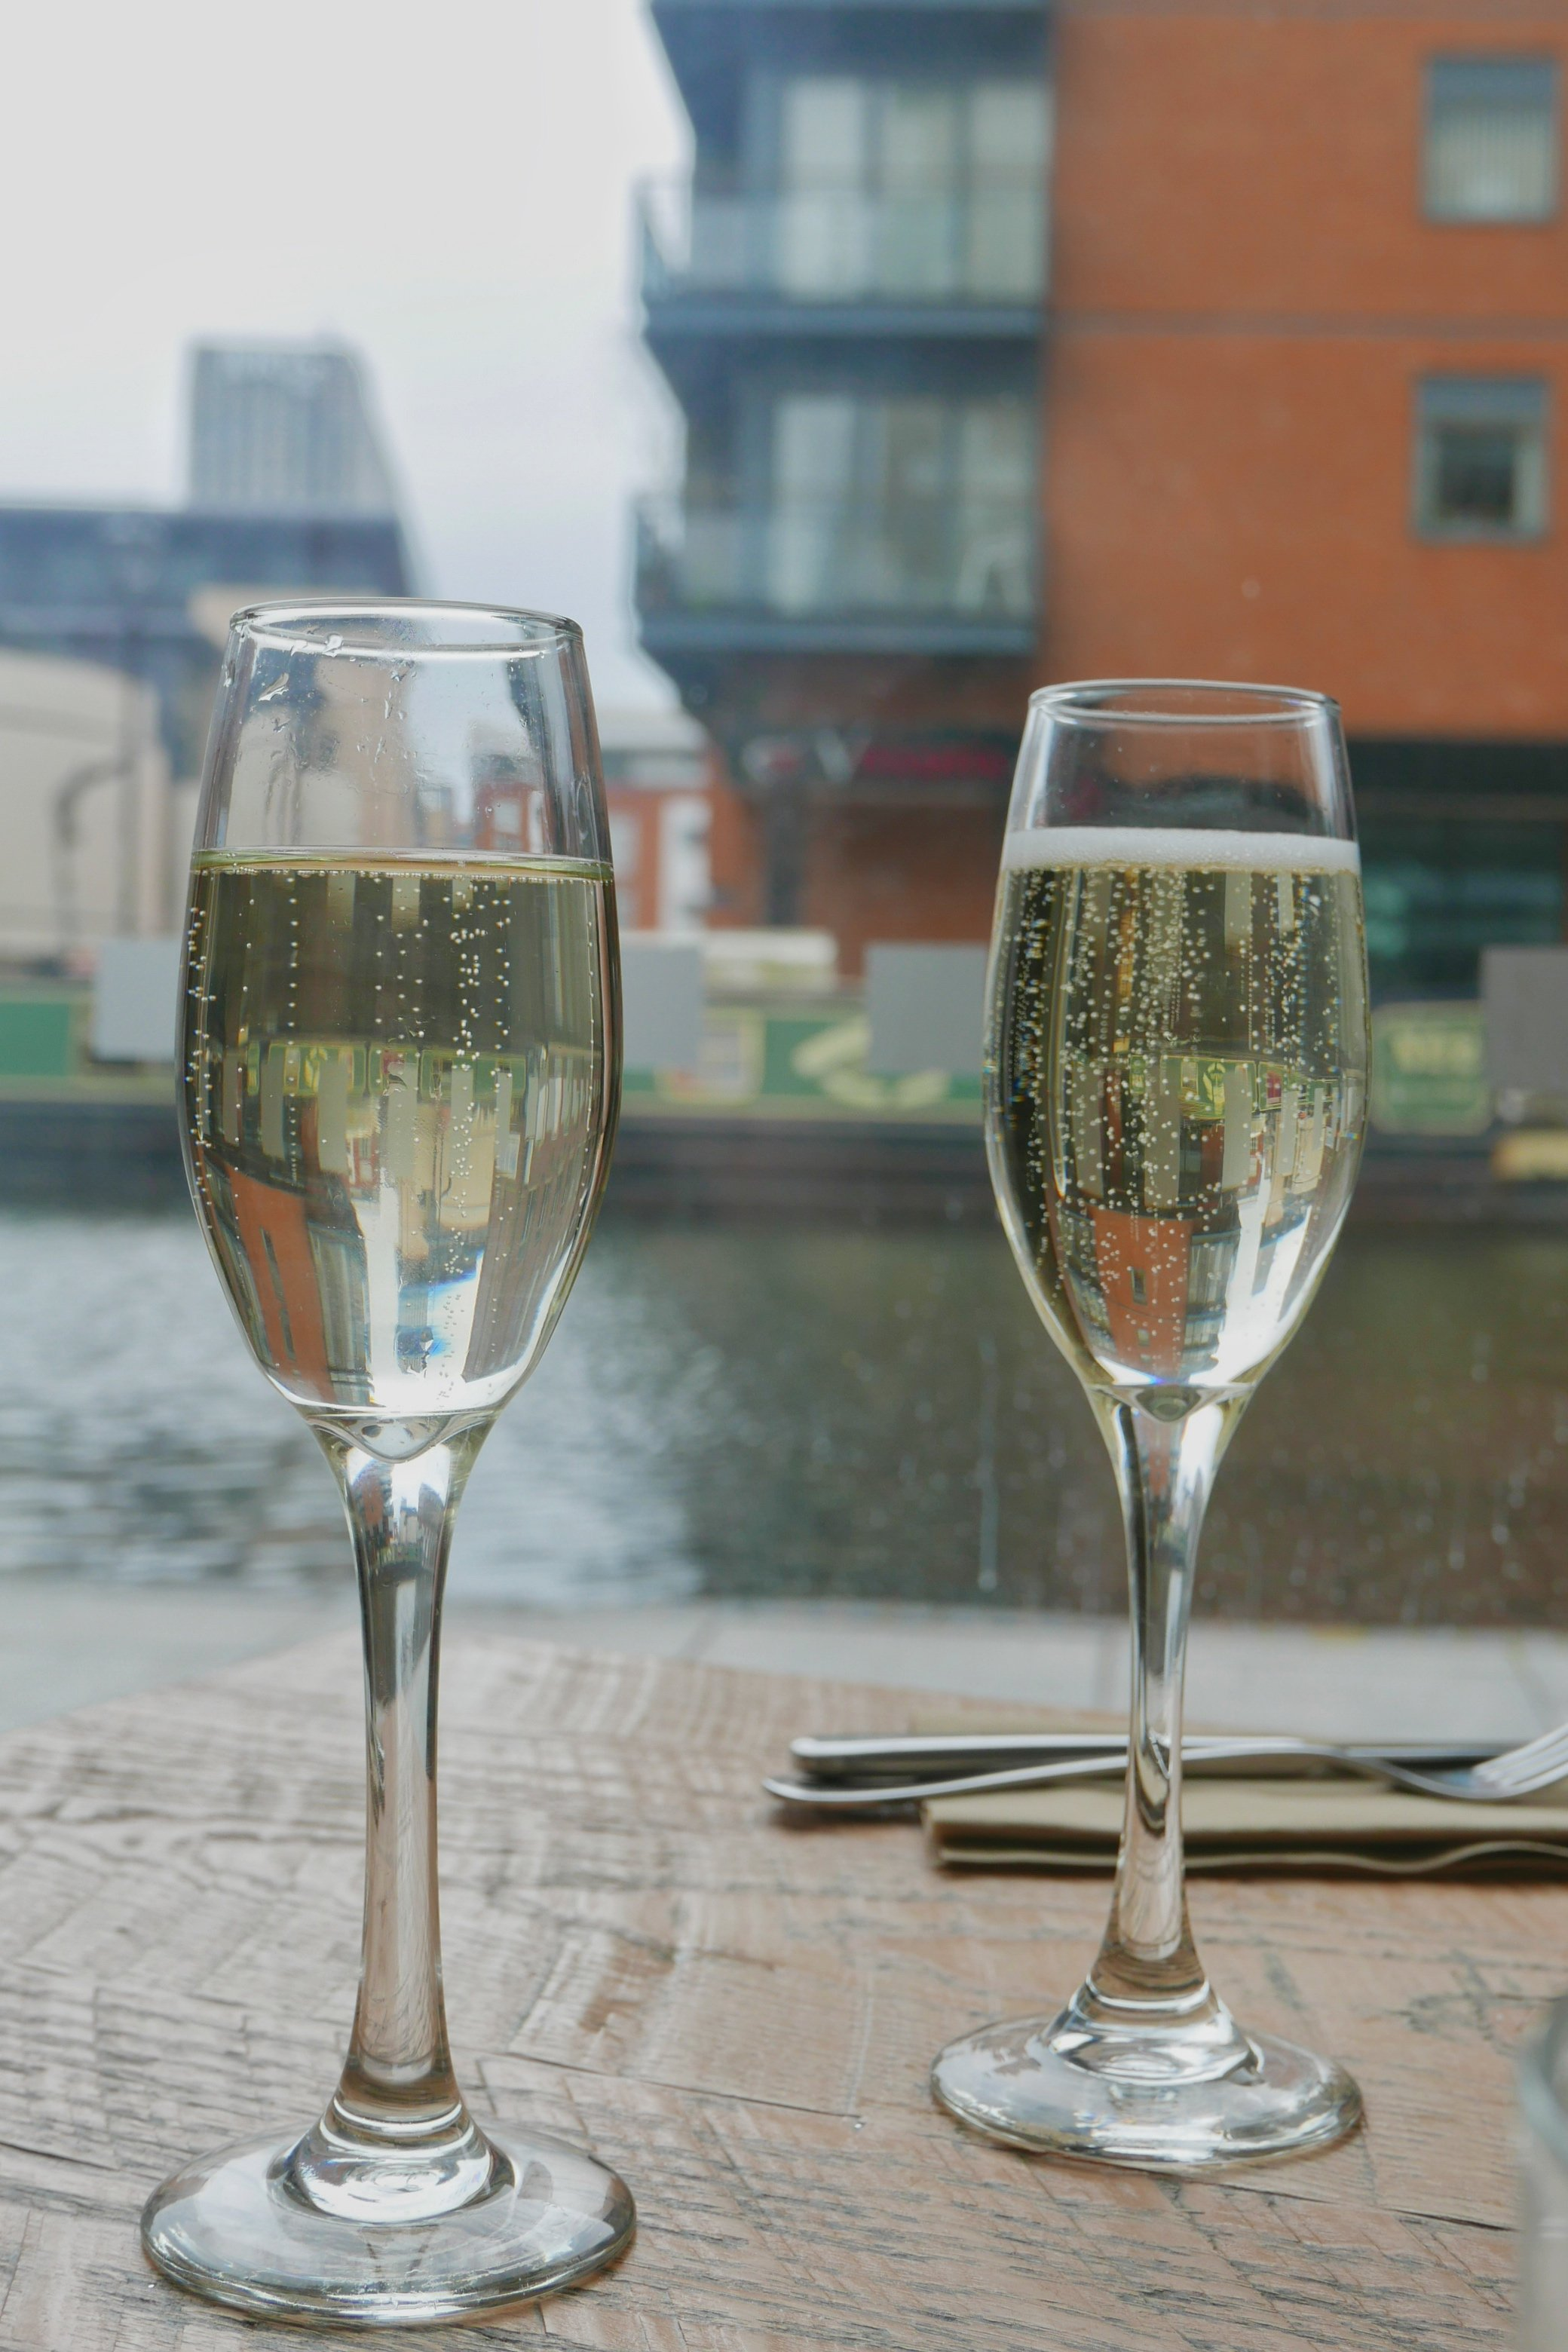 Glasses of fizz: Afternoon Tea at Bardolino Birmingham